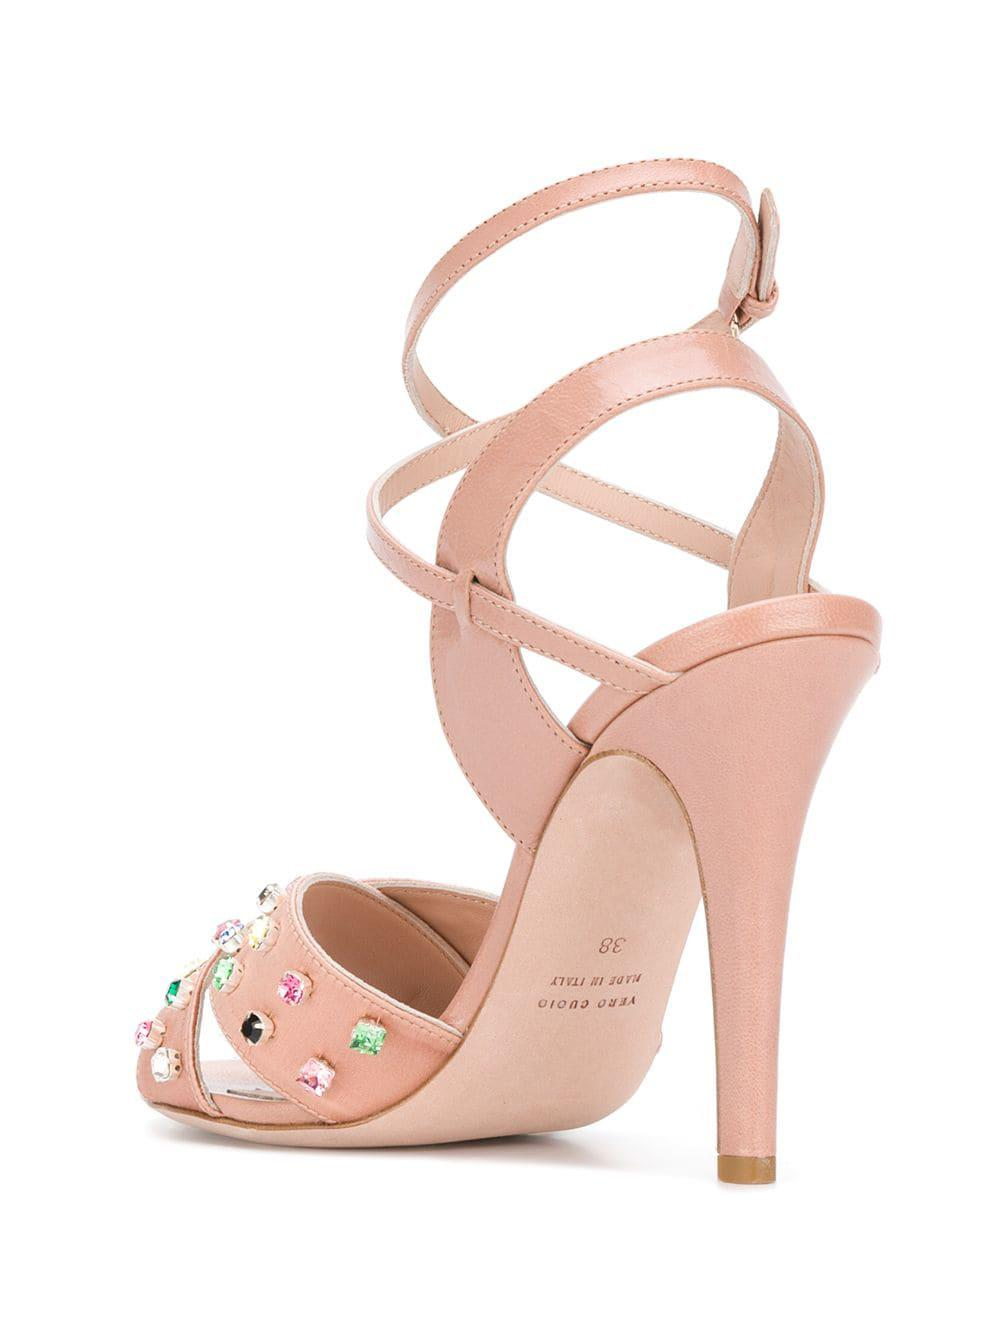 089d2f10c0e735 RED Valentino - Pink Red(v) Jewel Embellished Sandals - Lyst. View  fullscreen